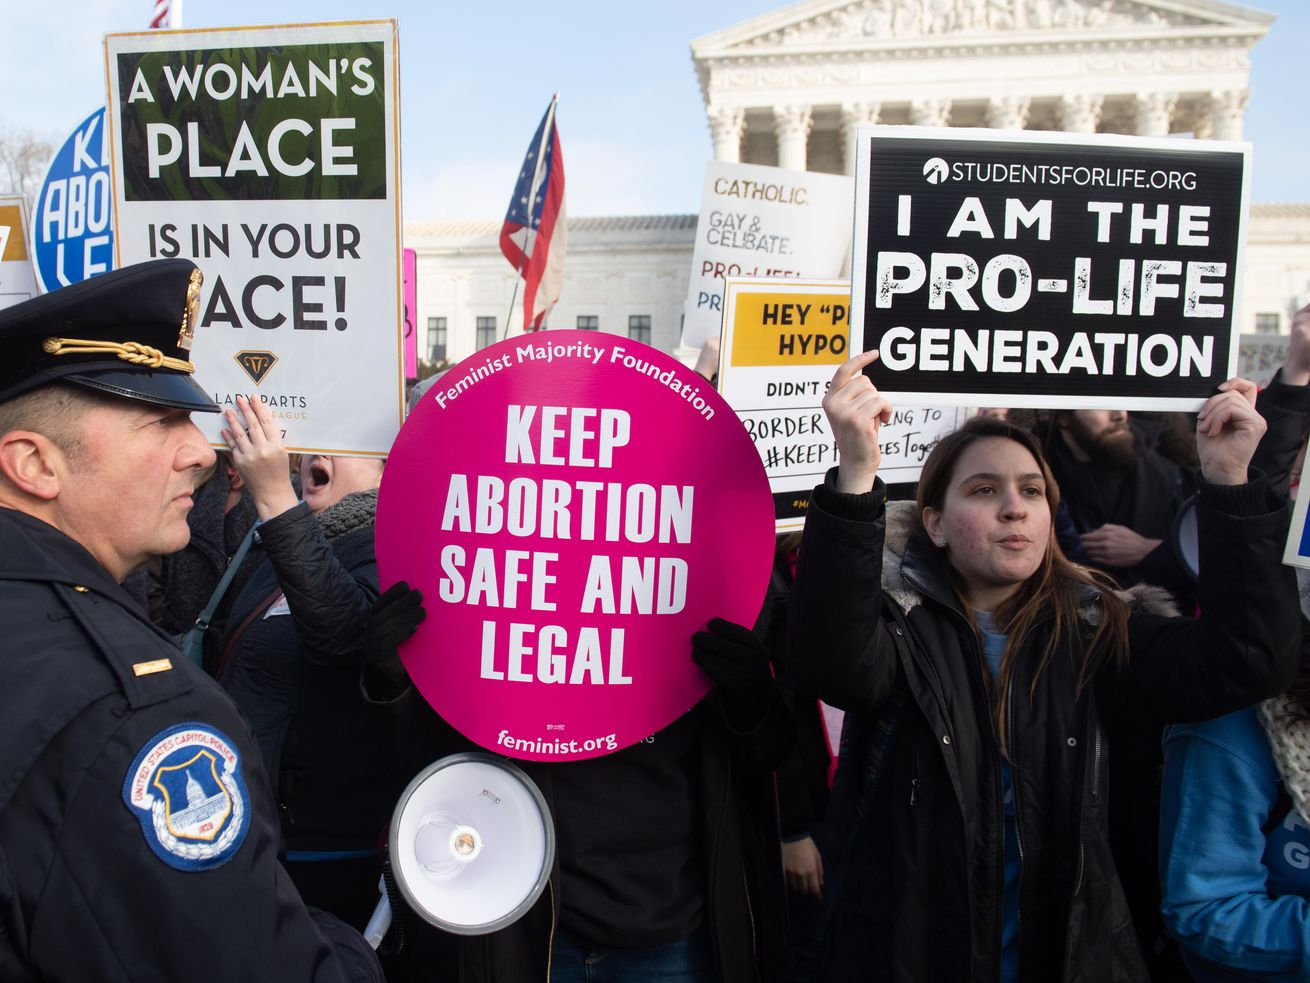 Activists on both sides of the abortion issue protest outside the US Supreme Court in Washington, DC, on January 18, 2019.